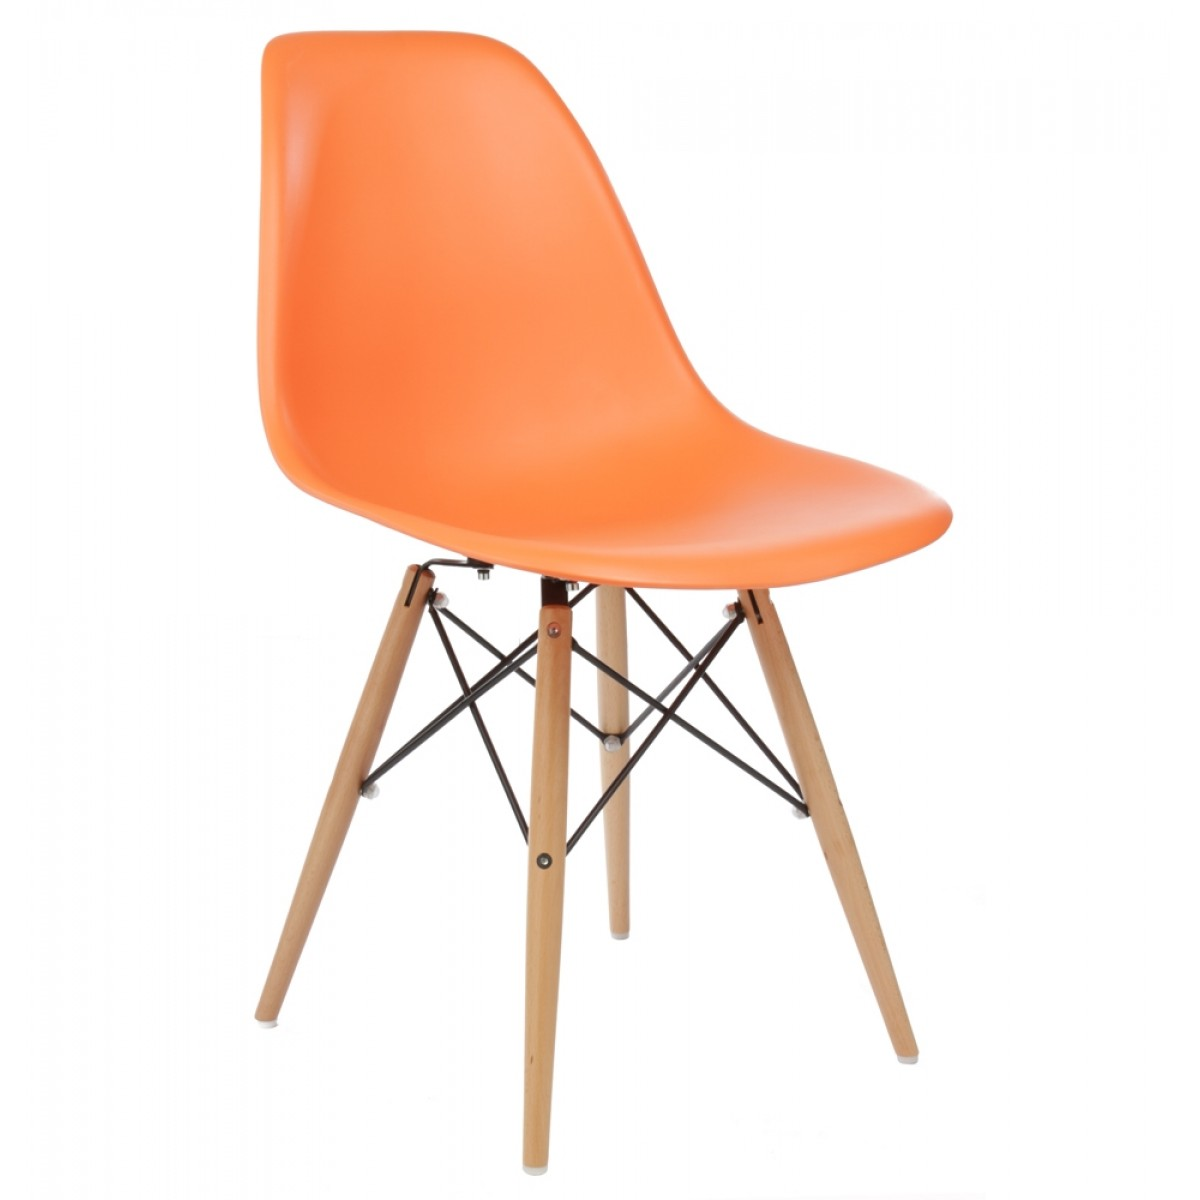 modern orange chair queen anne chairs eames style dsw molded plastic dining shell